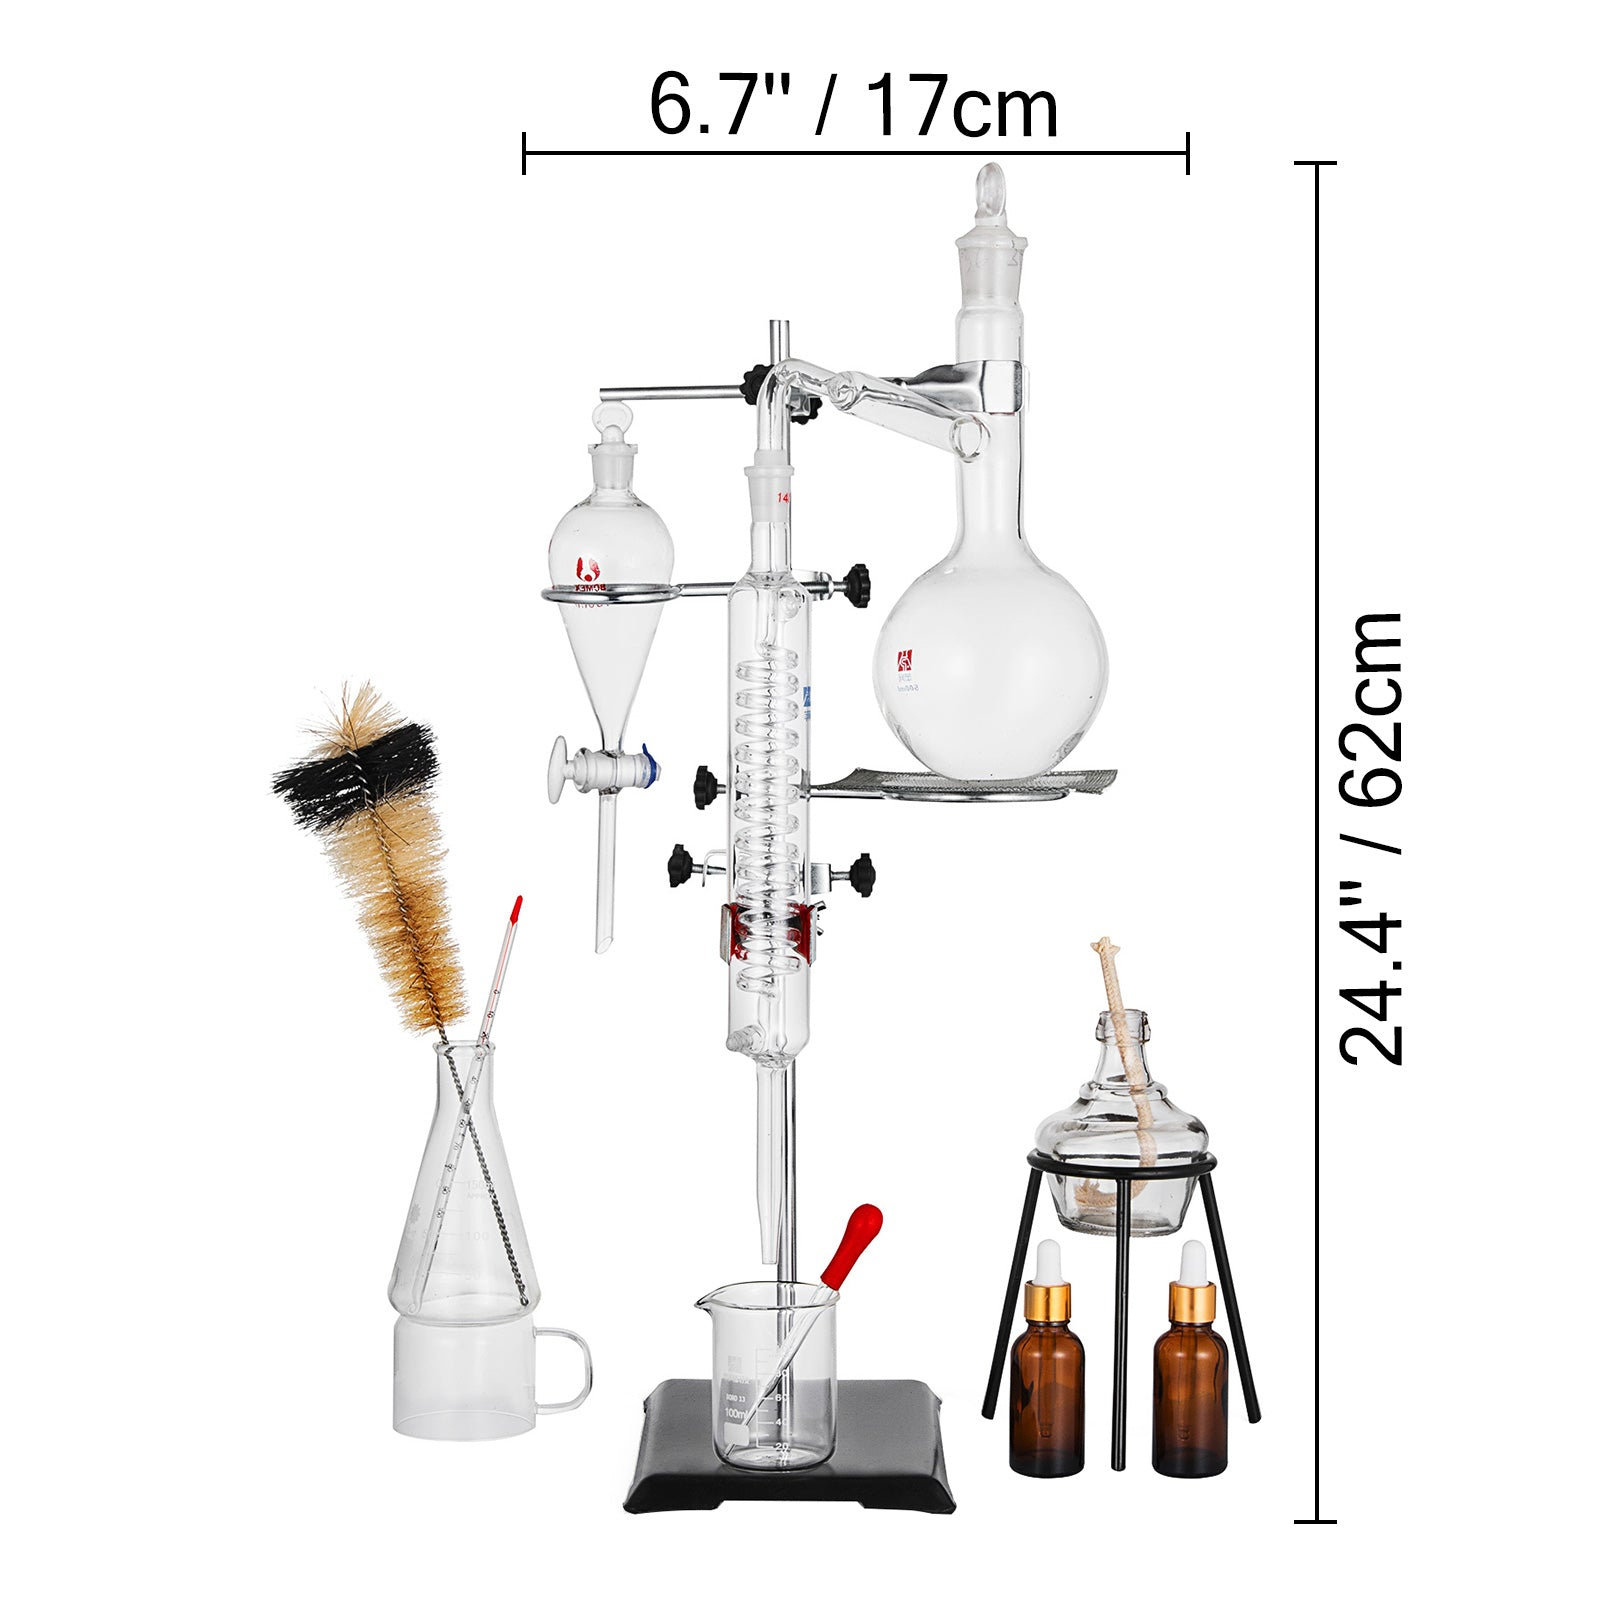 Chemistry Lab Glassware Kit With 24/40 Glass Ground Joints 32pcs